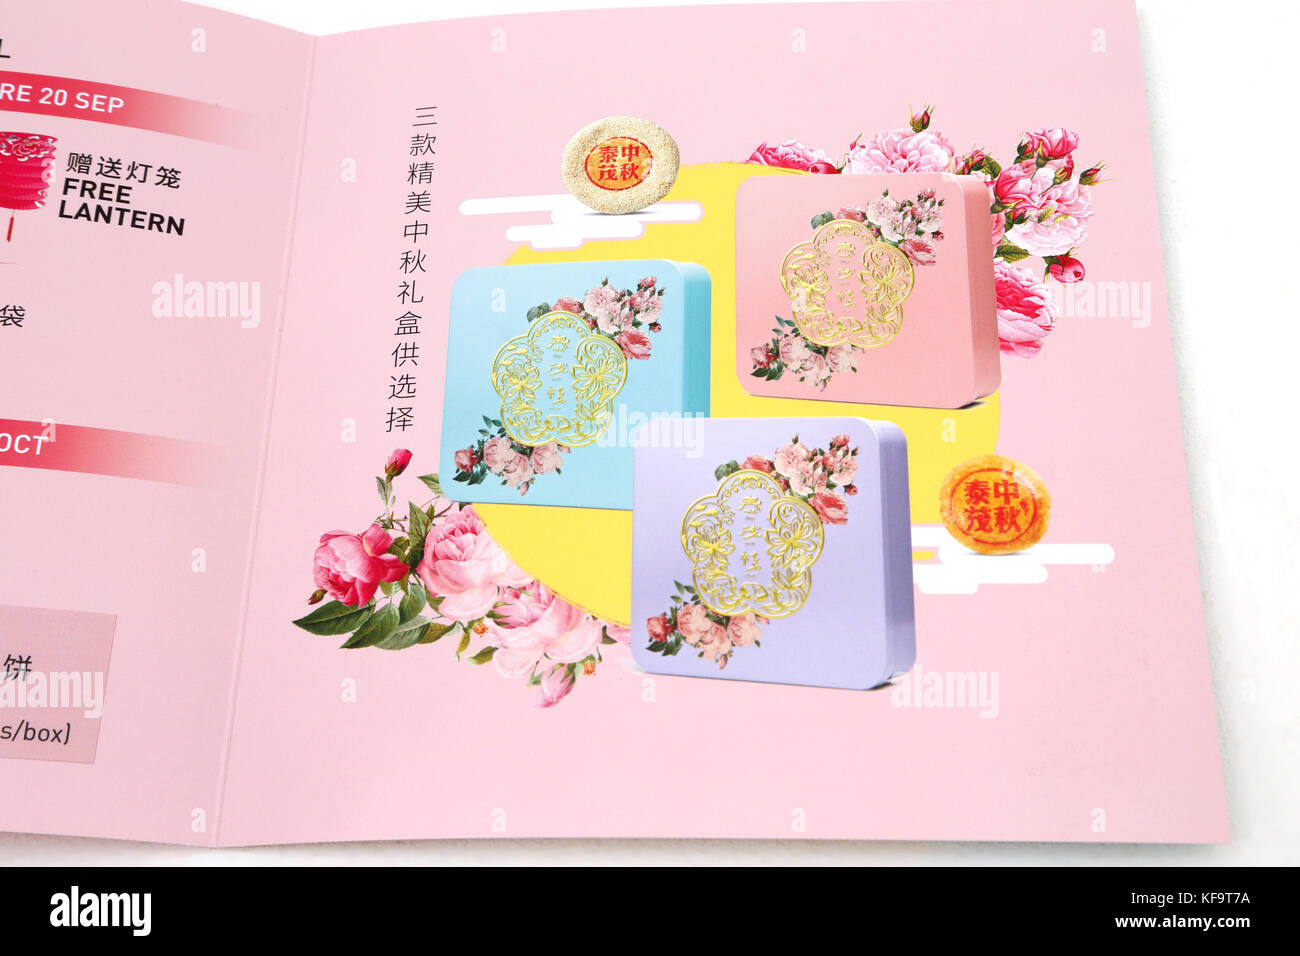 Thye Moh Chan brochure montrant Mooncakes Teochew Gift Sets Banque D'Images